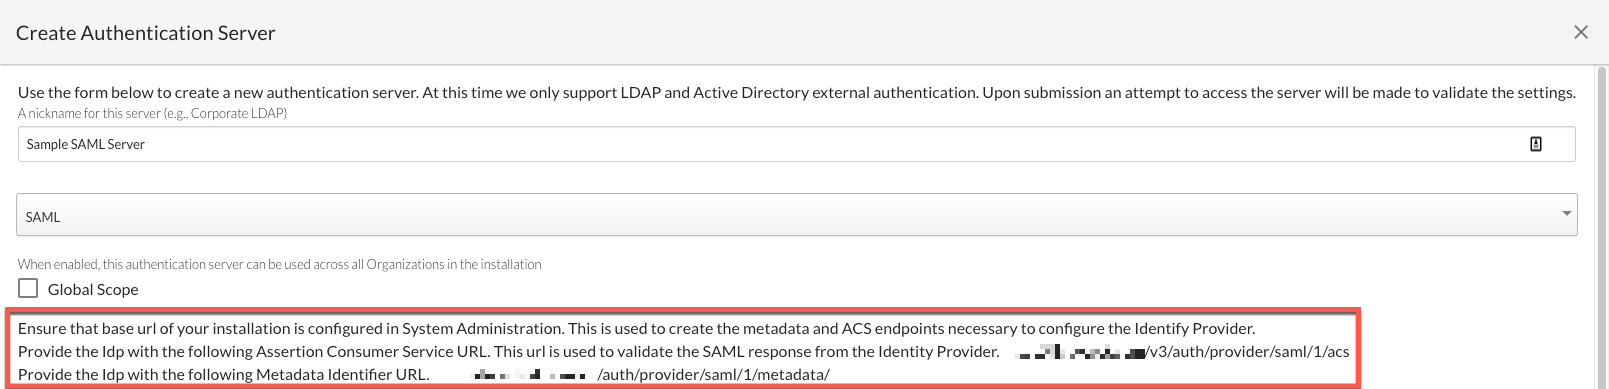 Creating a SAML Server - Required Configuration Details